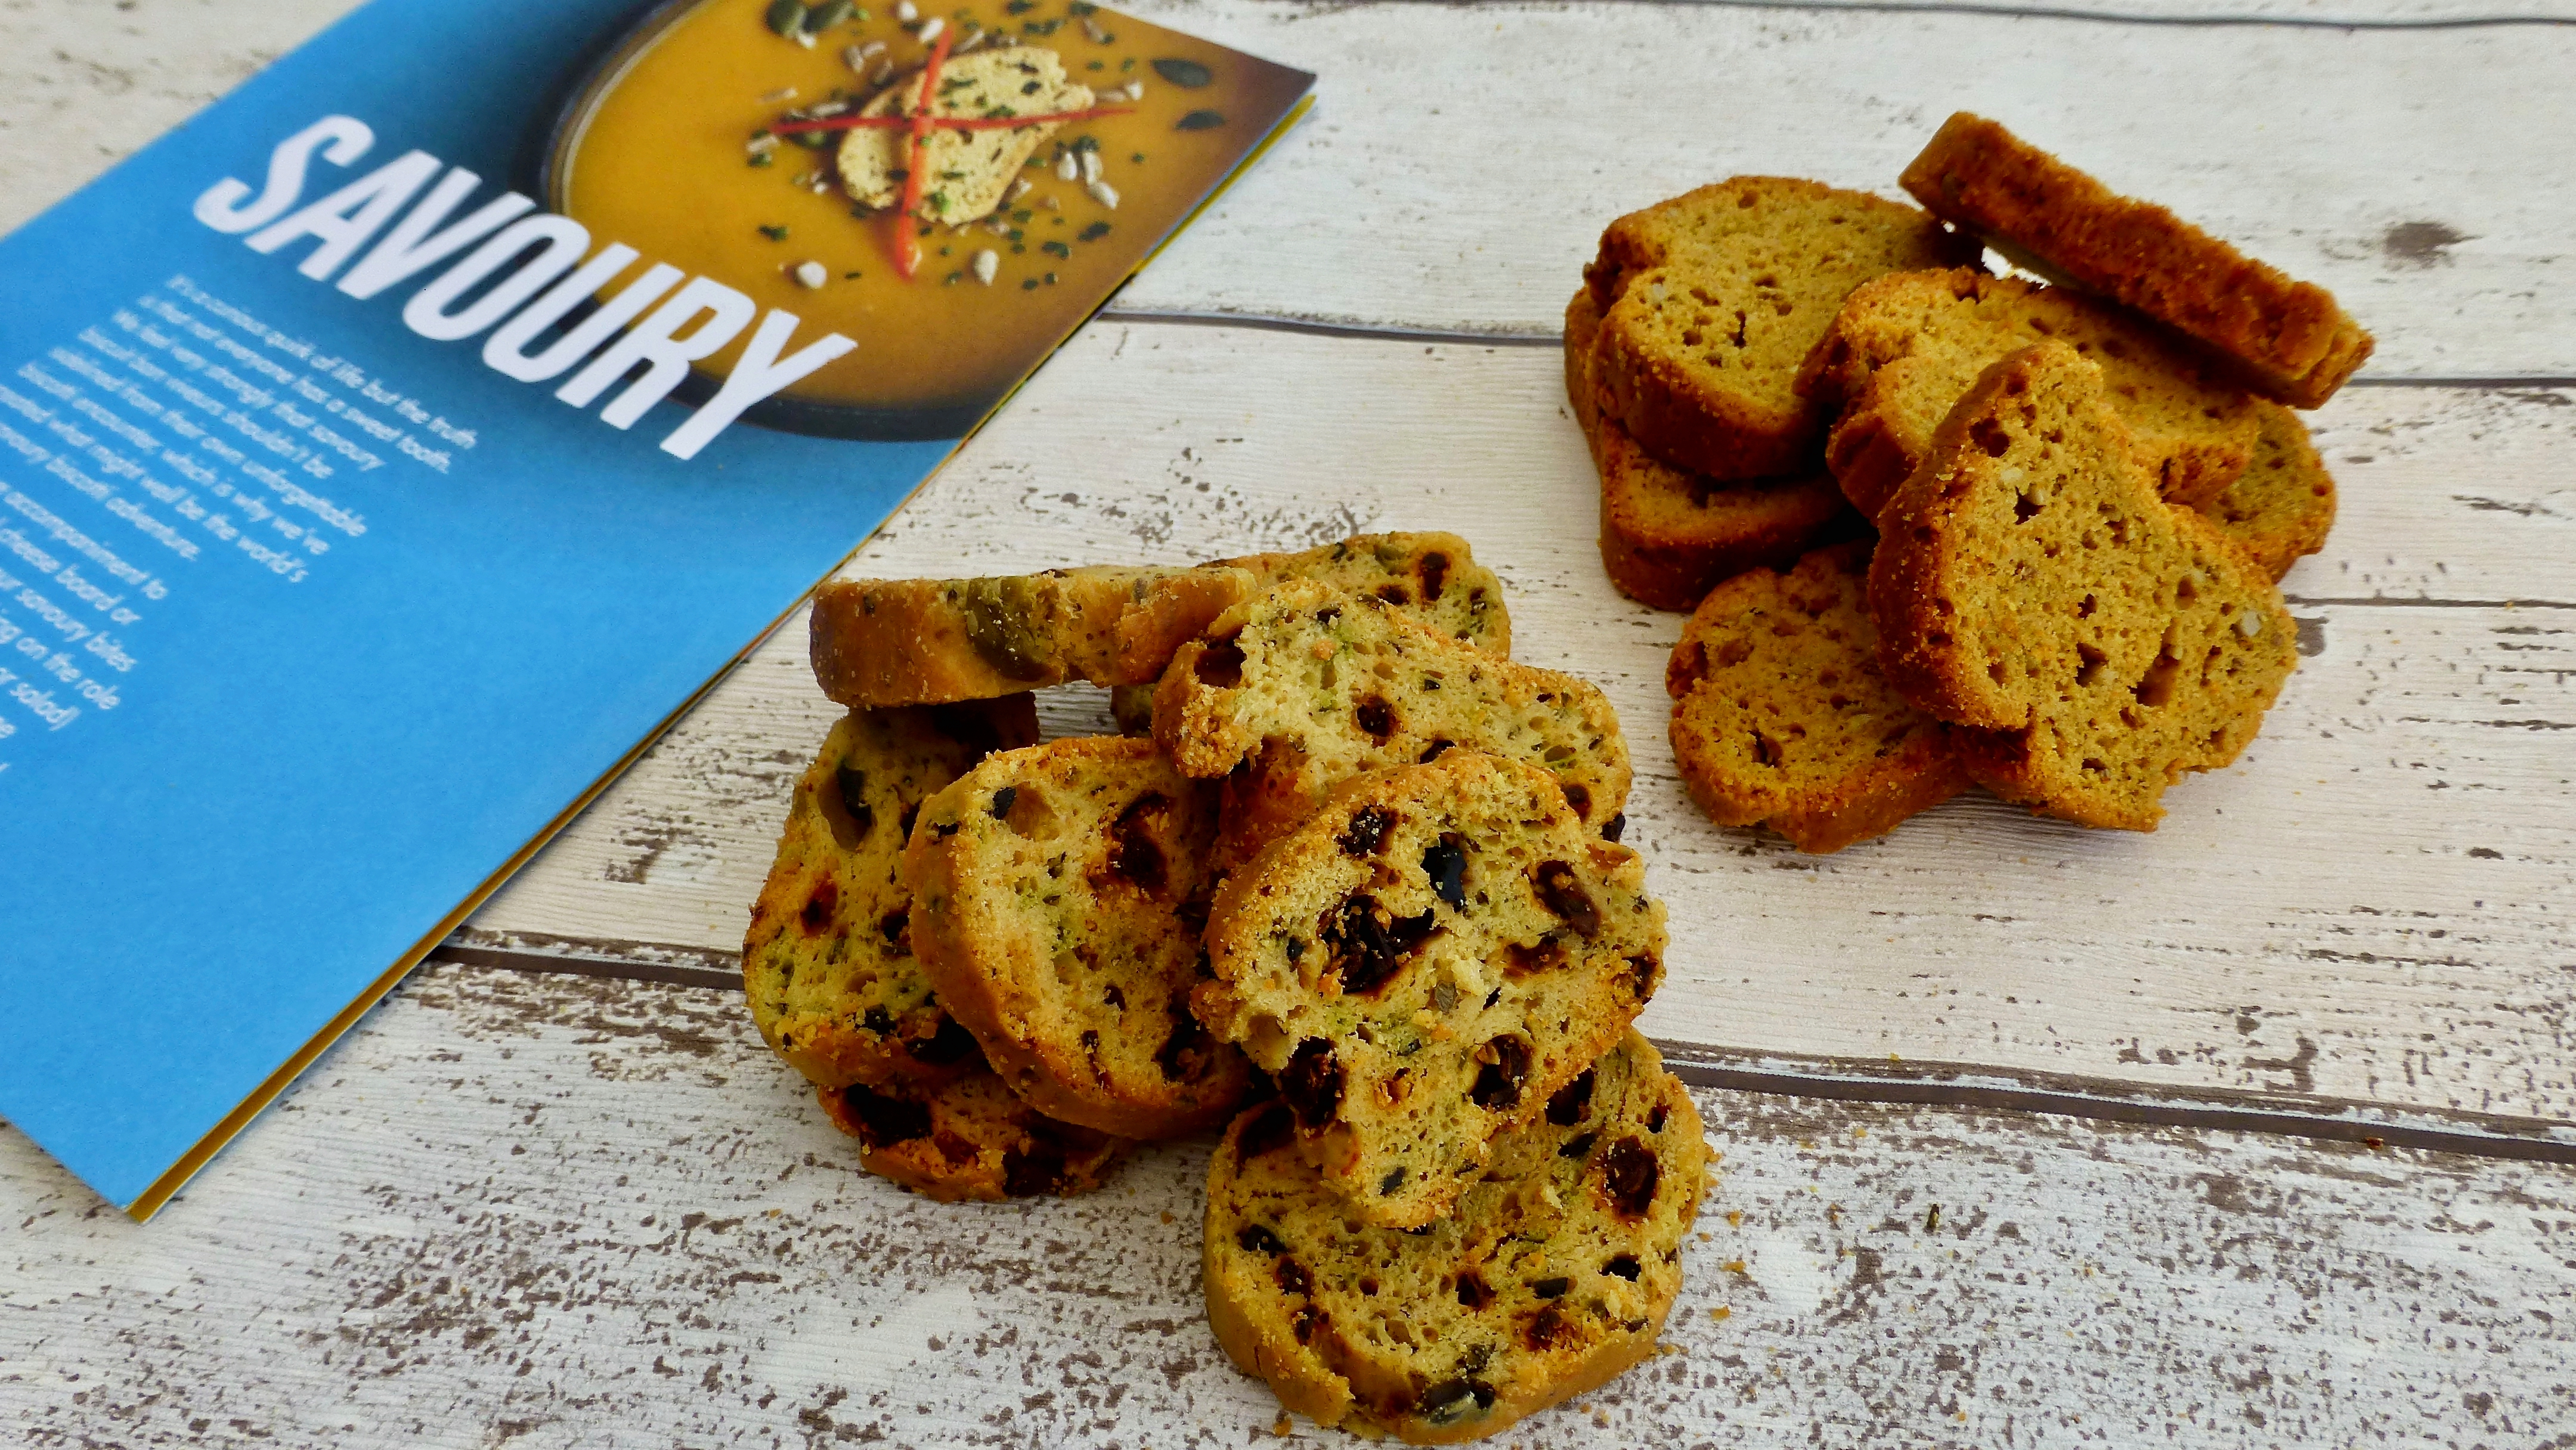 Sun Dried Tomato & Olives and Indian Spice Biscotti